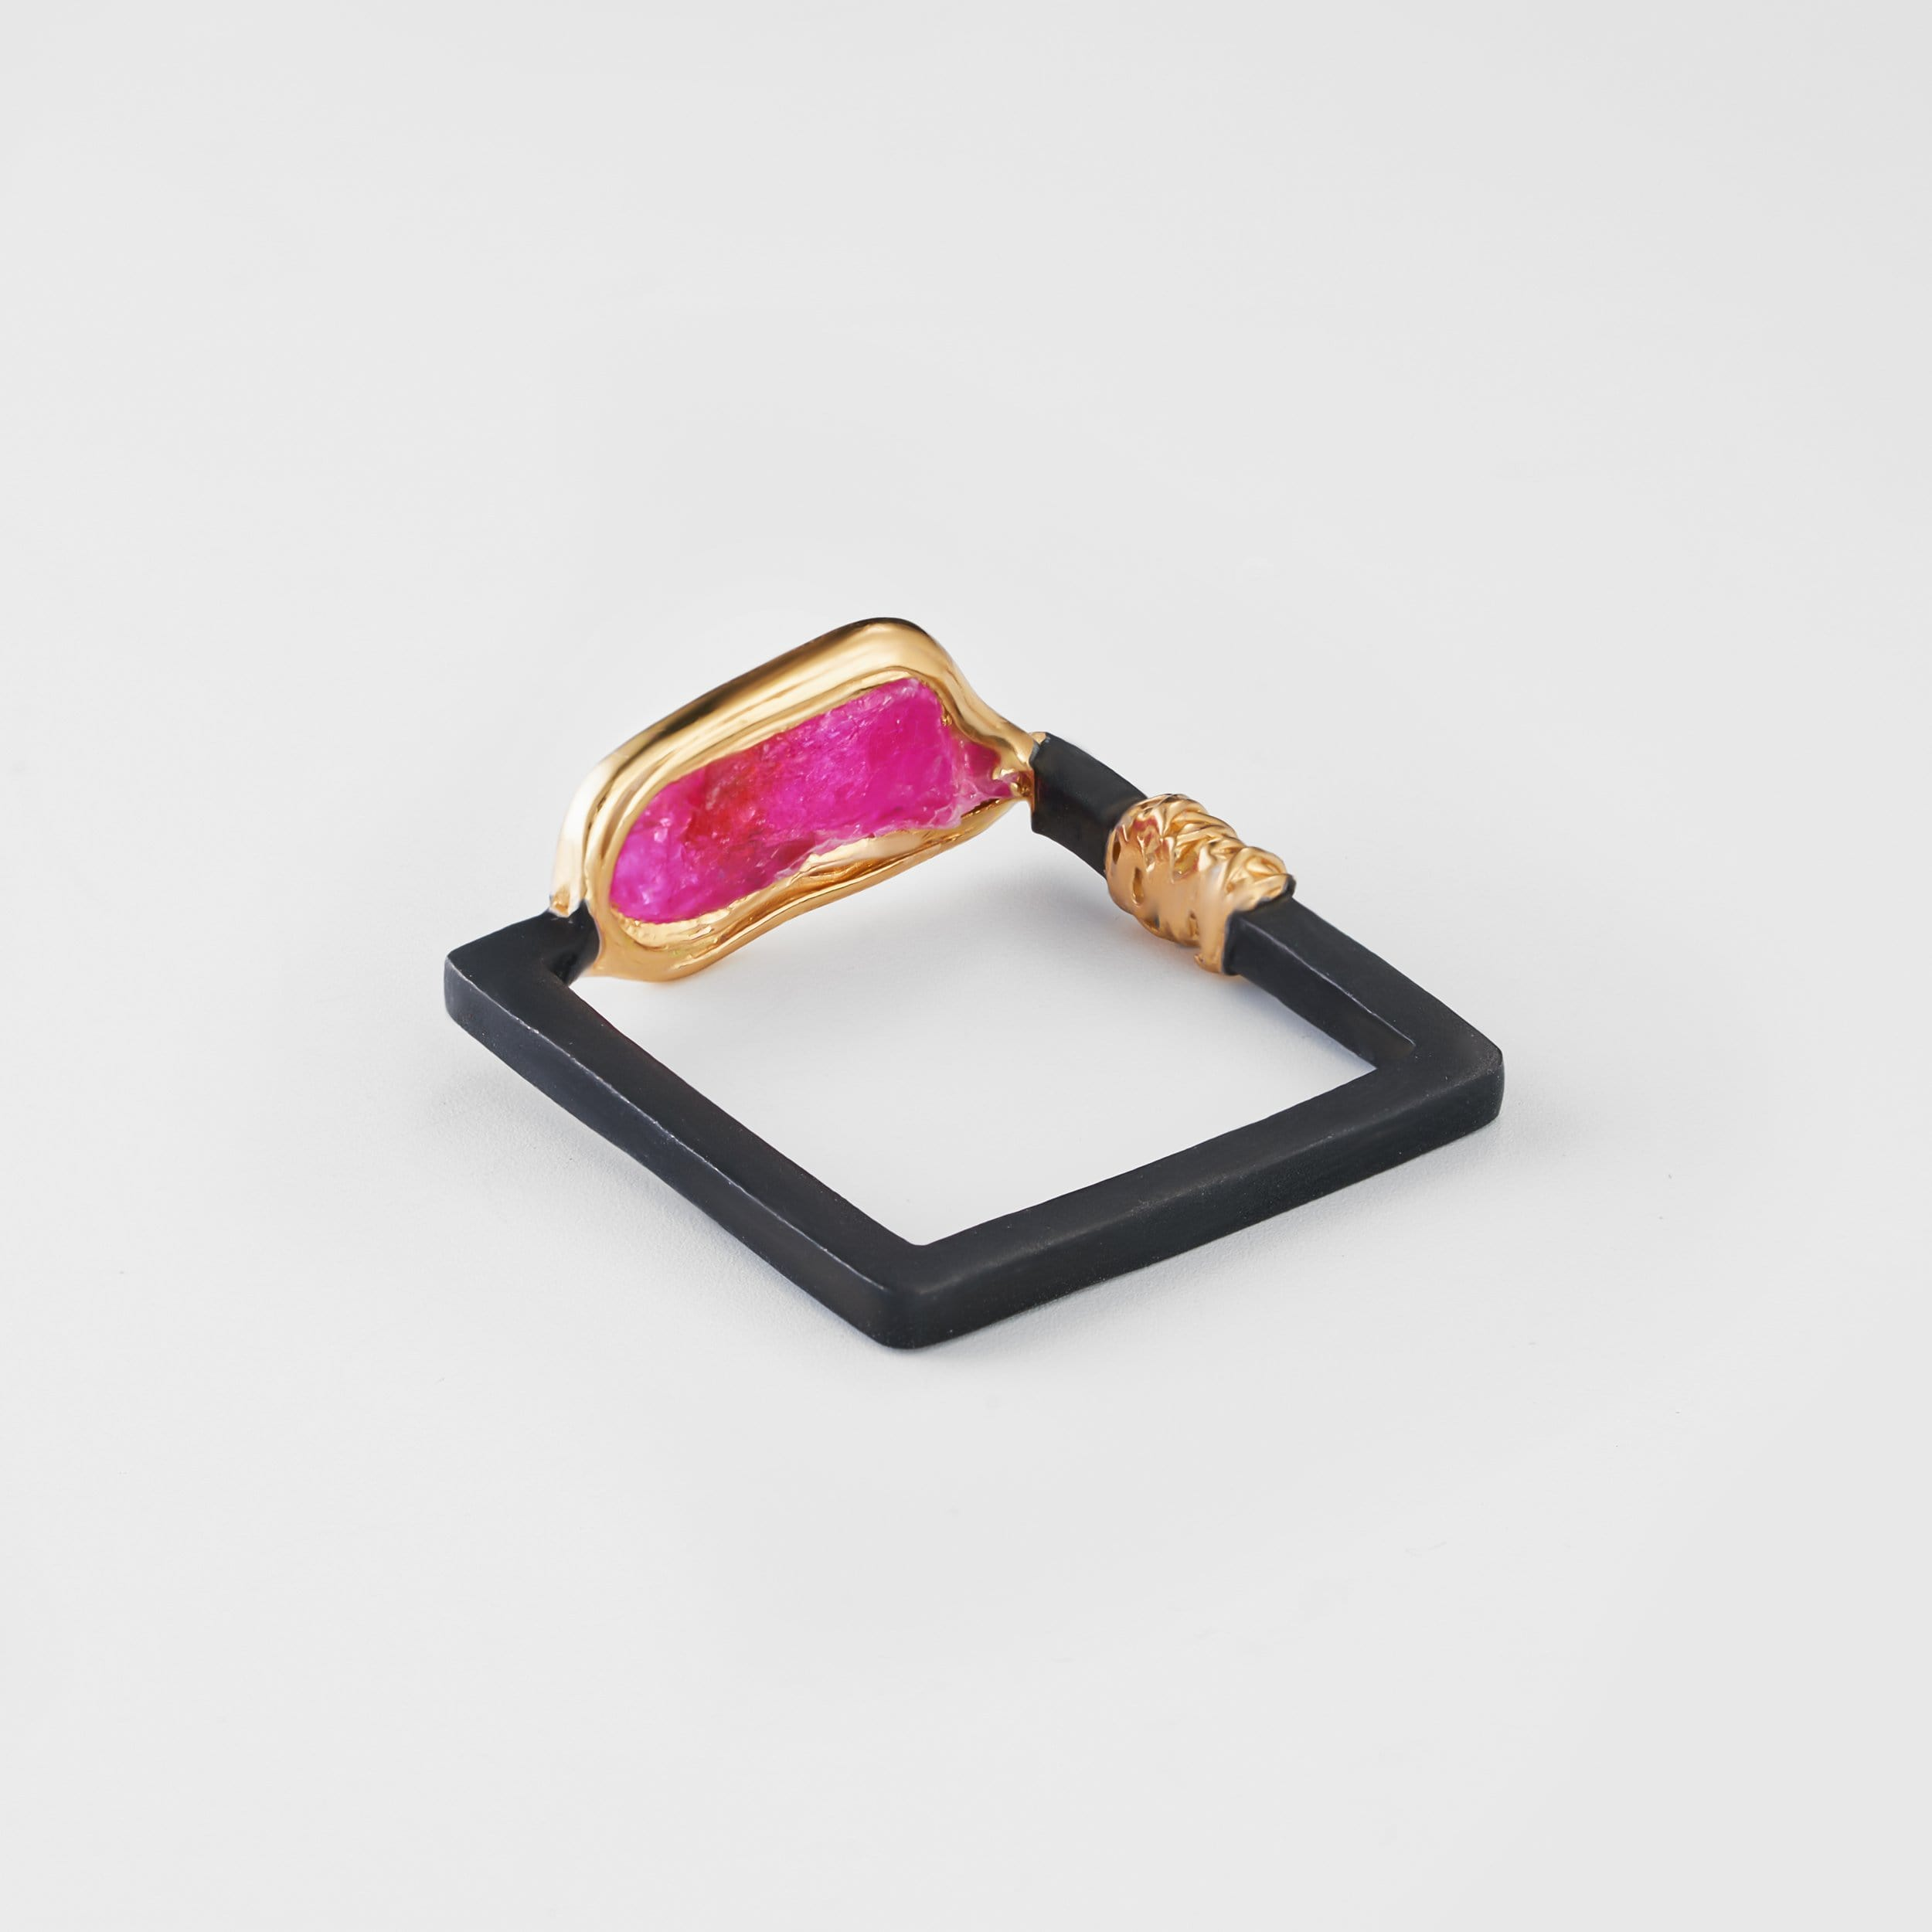 Faithe Ruby Ring